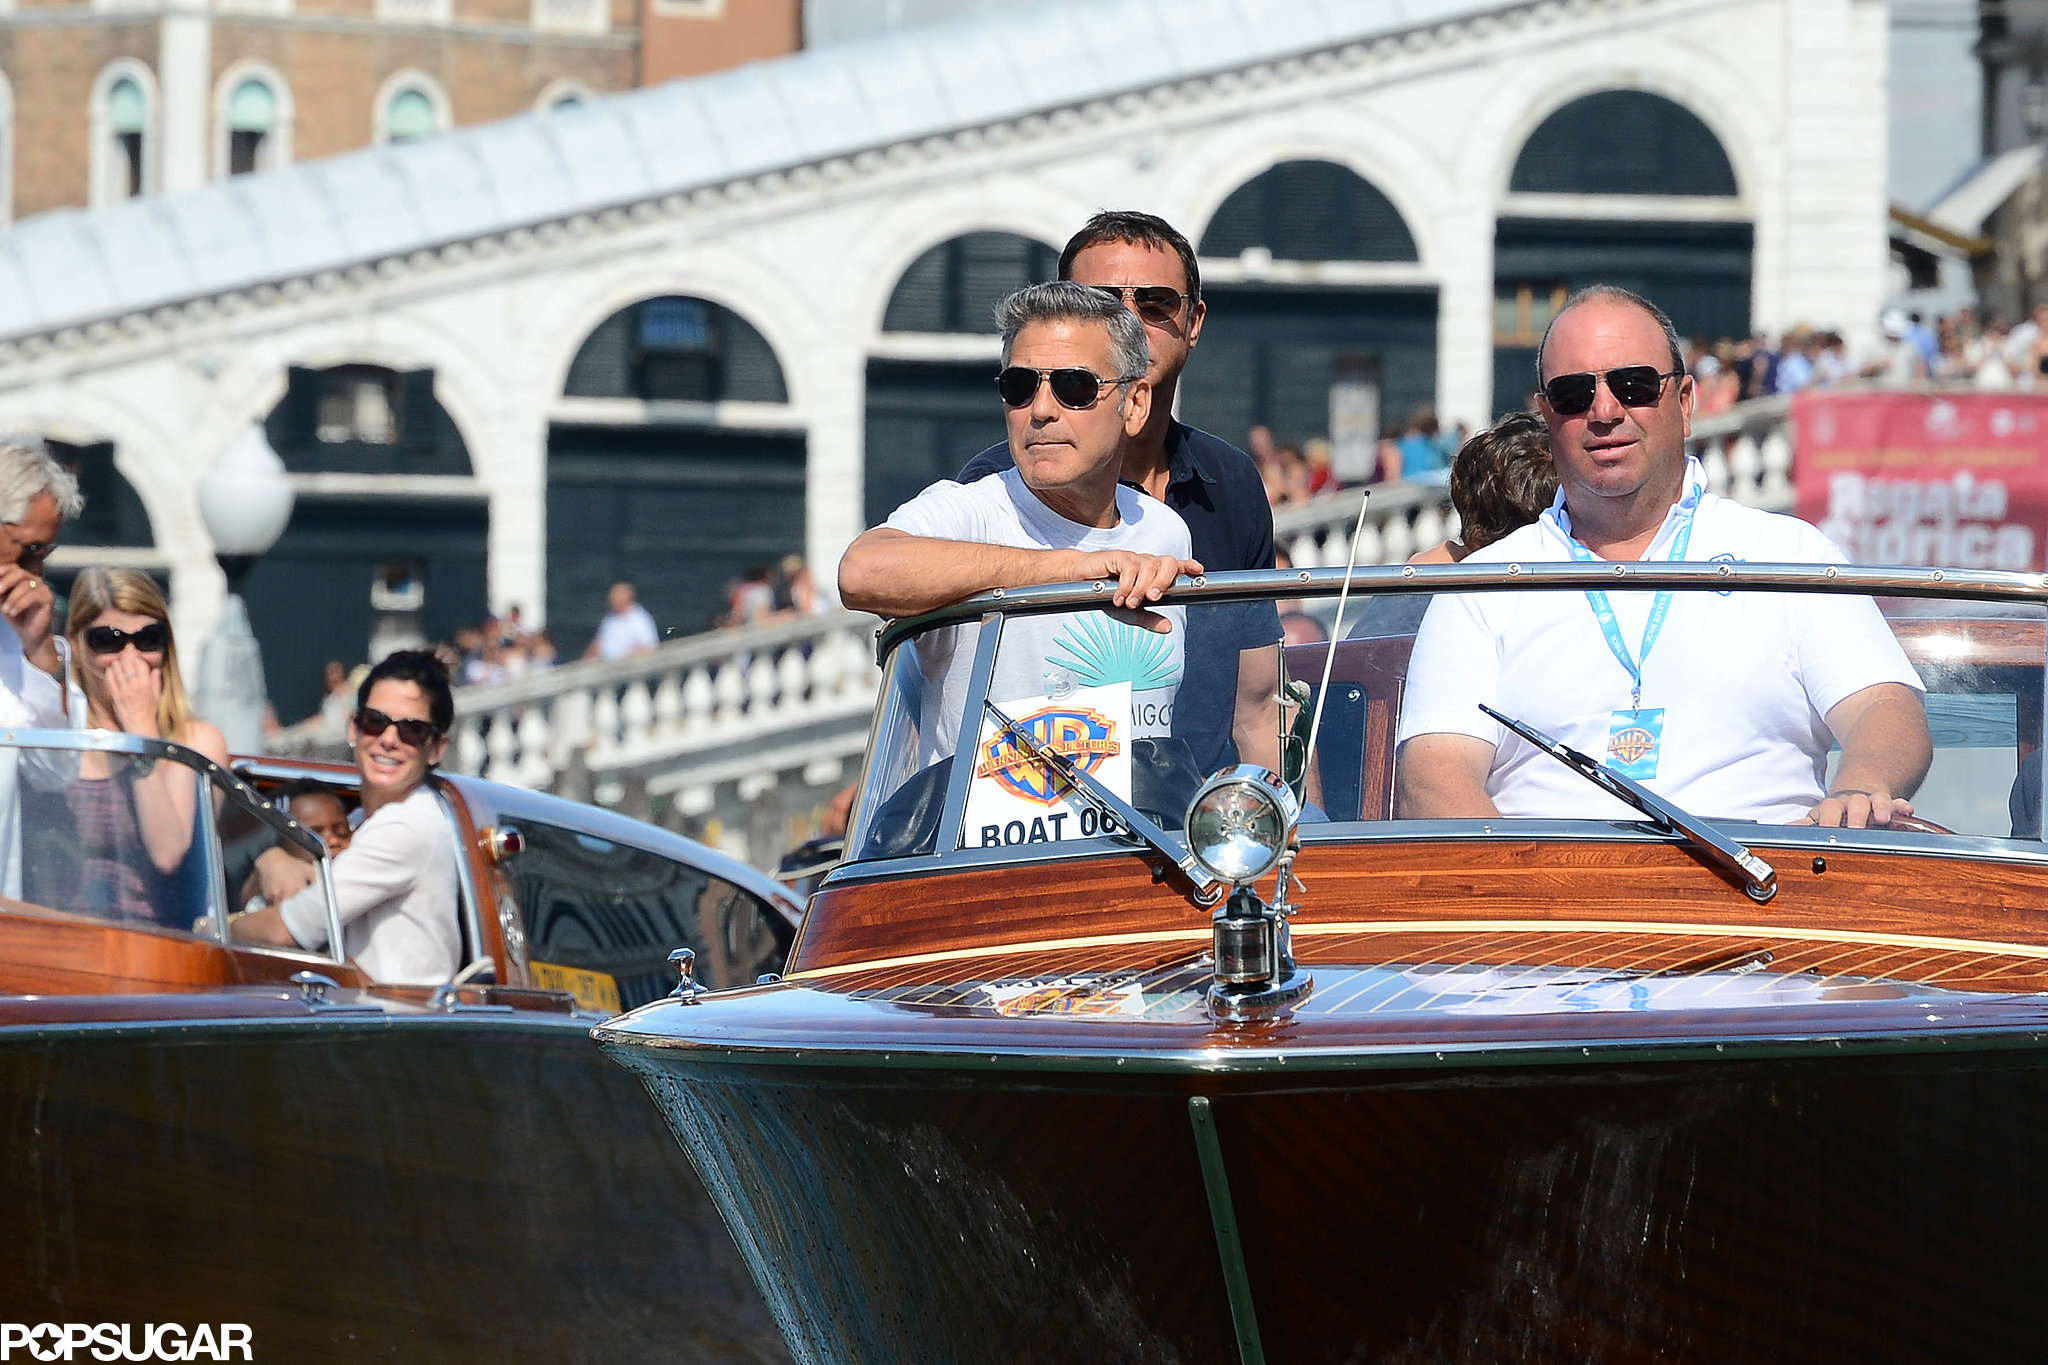 George Clooney and Sandra Bullock took boats to the Venice Film Festival.